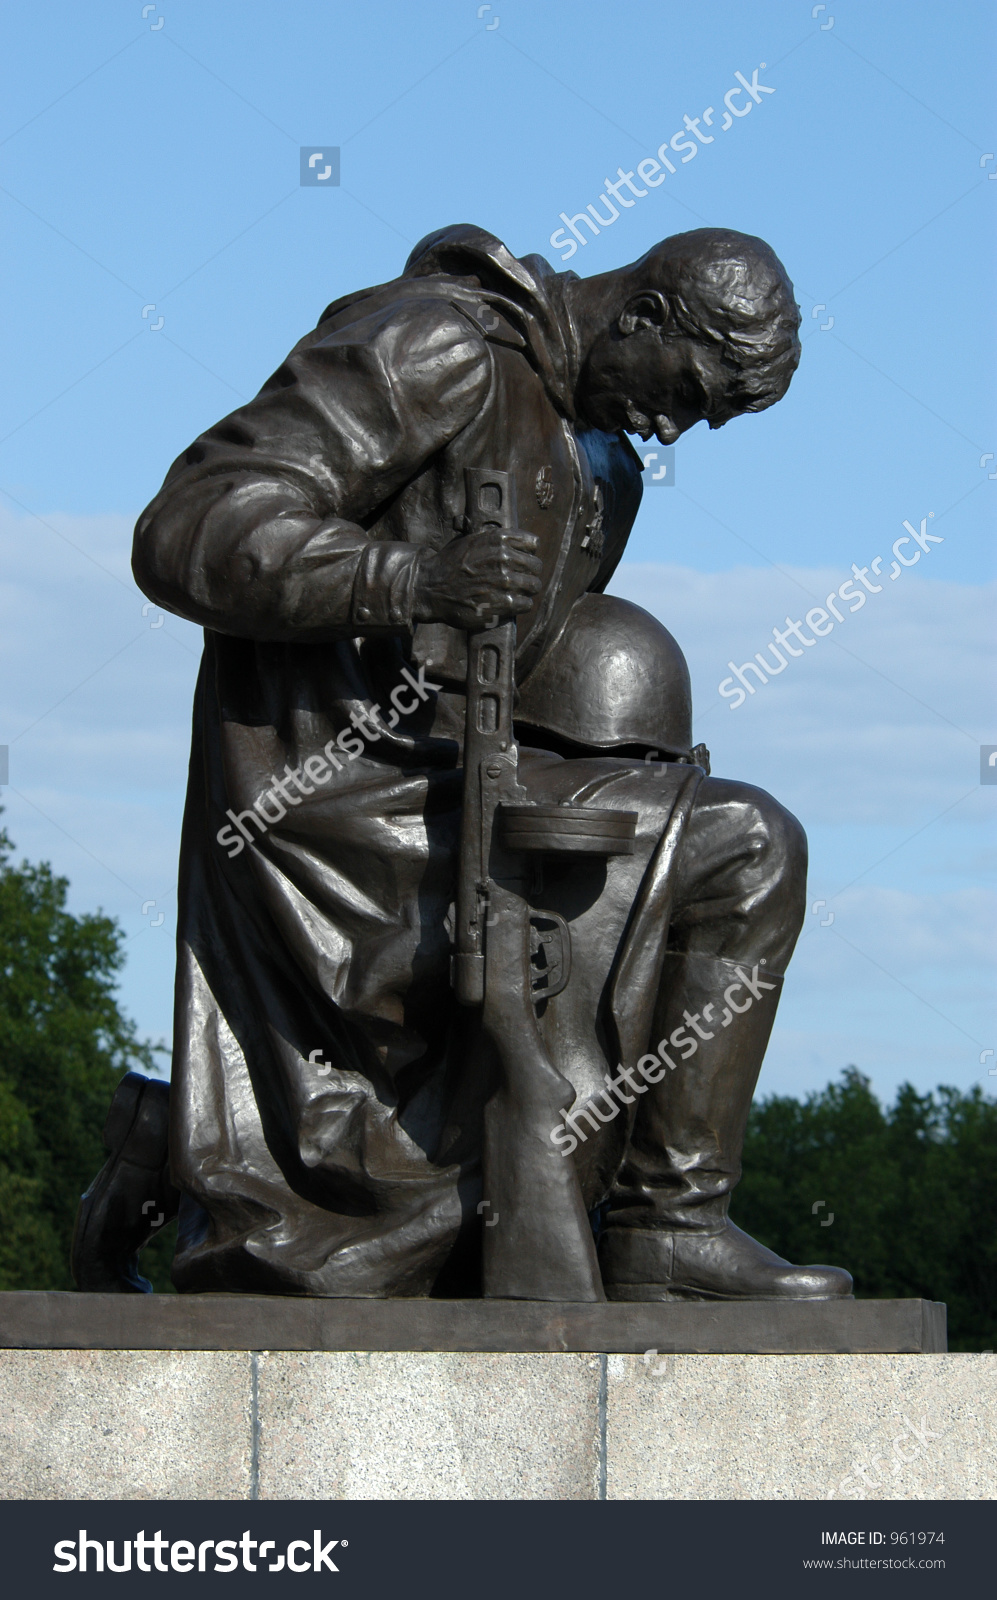 Huge Statue Kneeling Soldier Soviet War Stock Photo 961974.